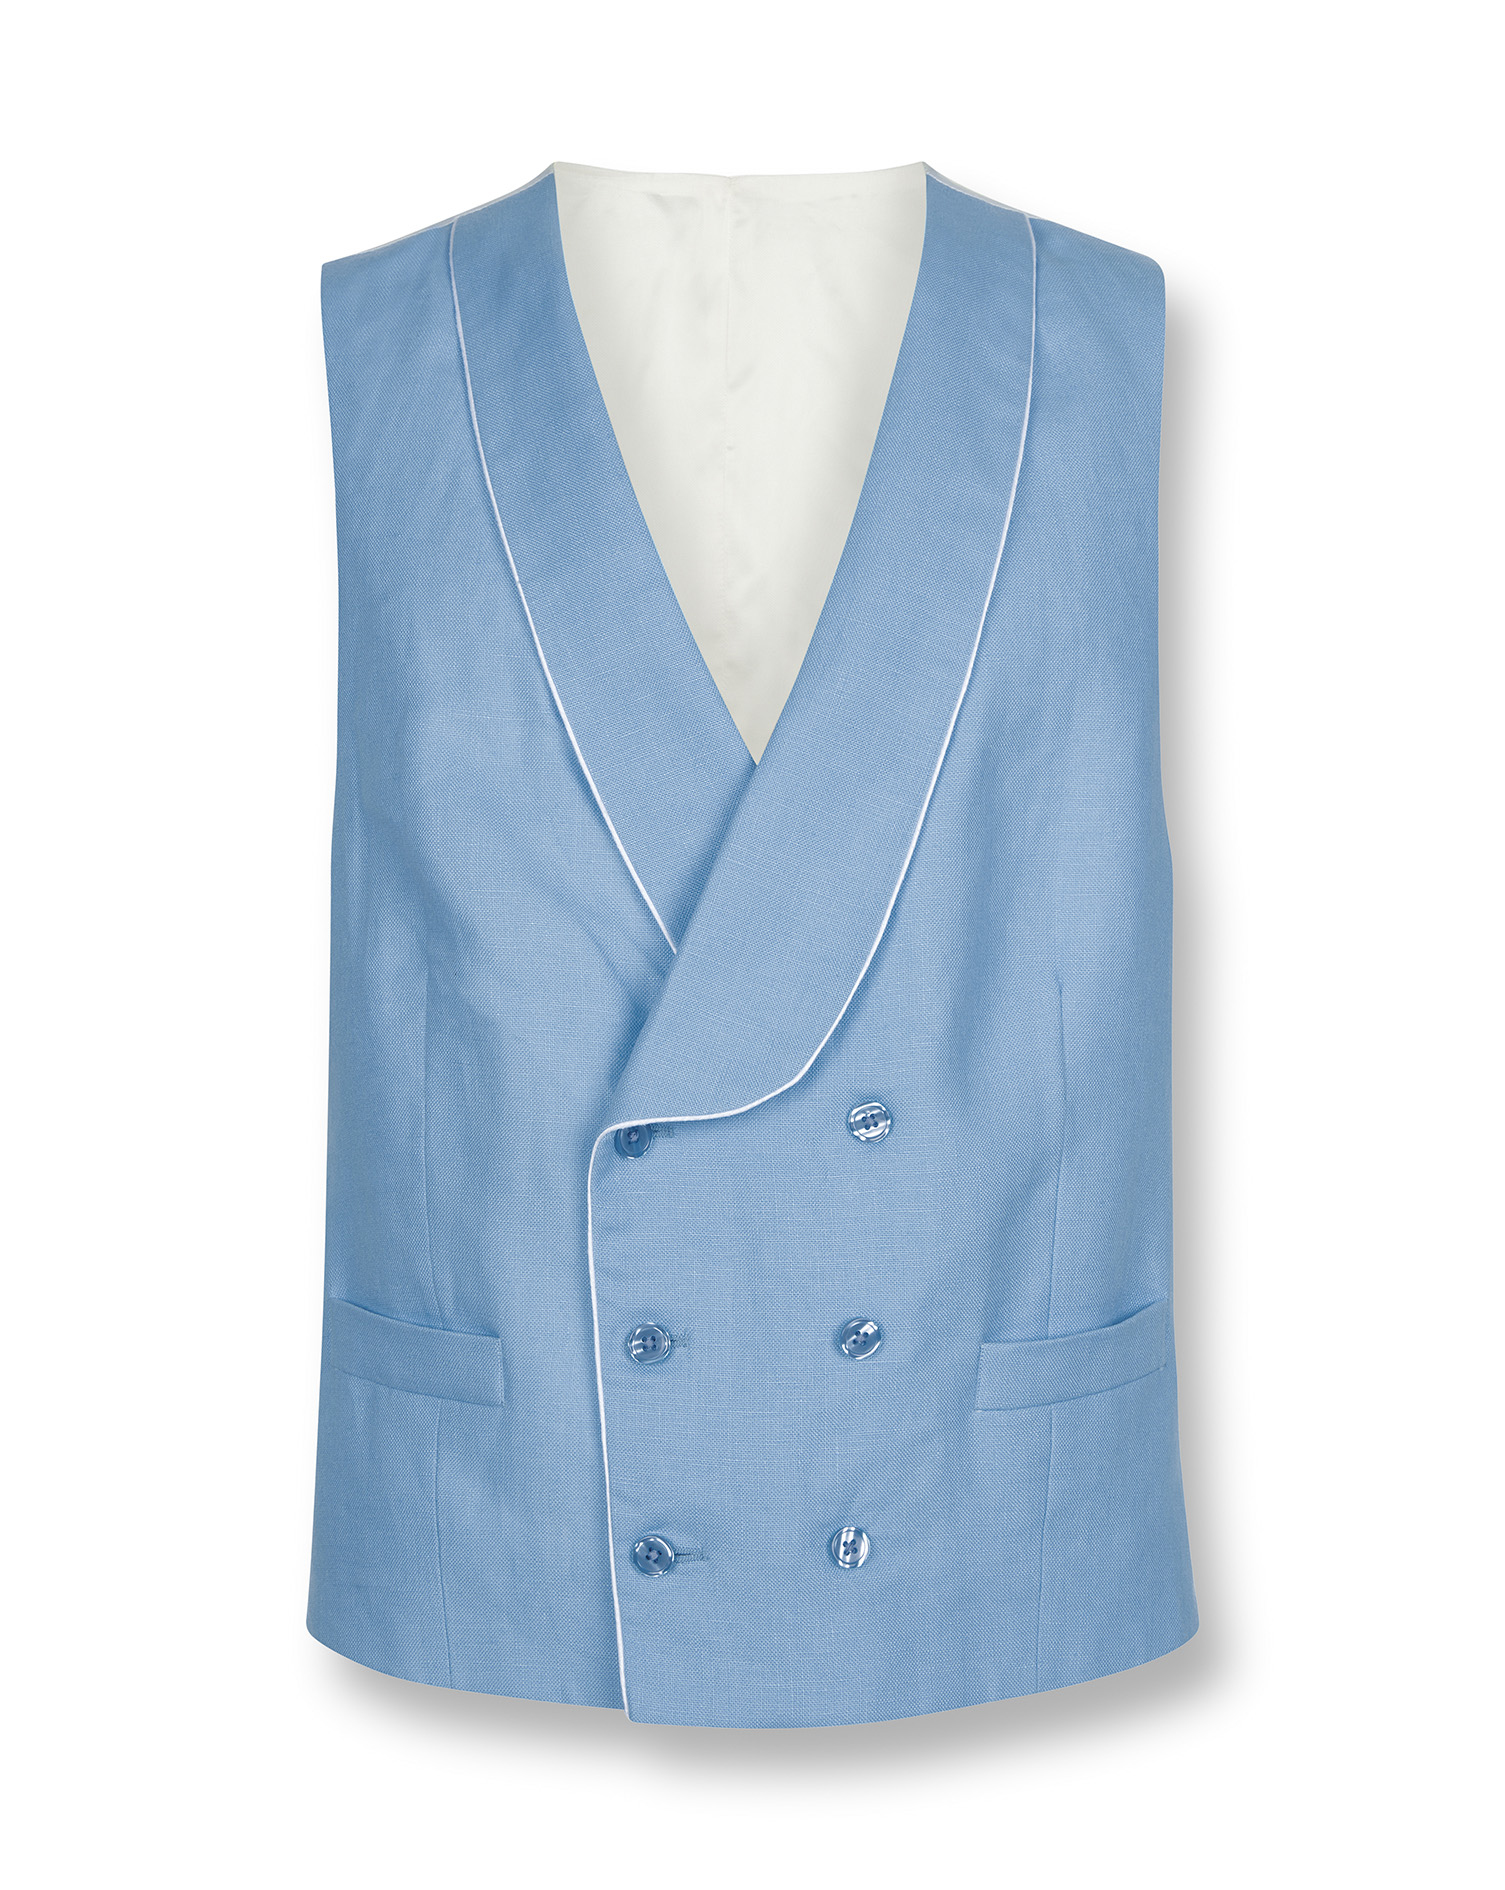 Blue Adjustable Fit Morning Suit Waistcoat Size w44 by Charles Tyrwhitt